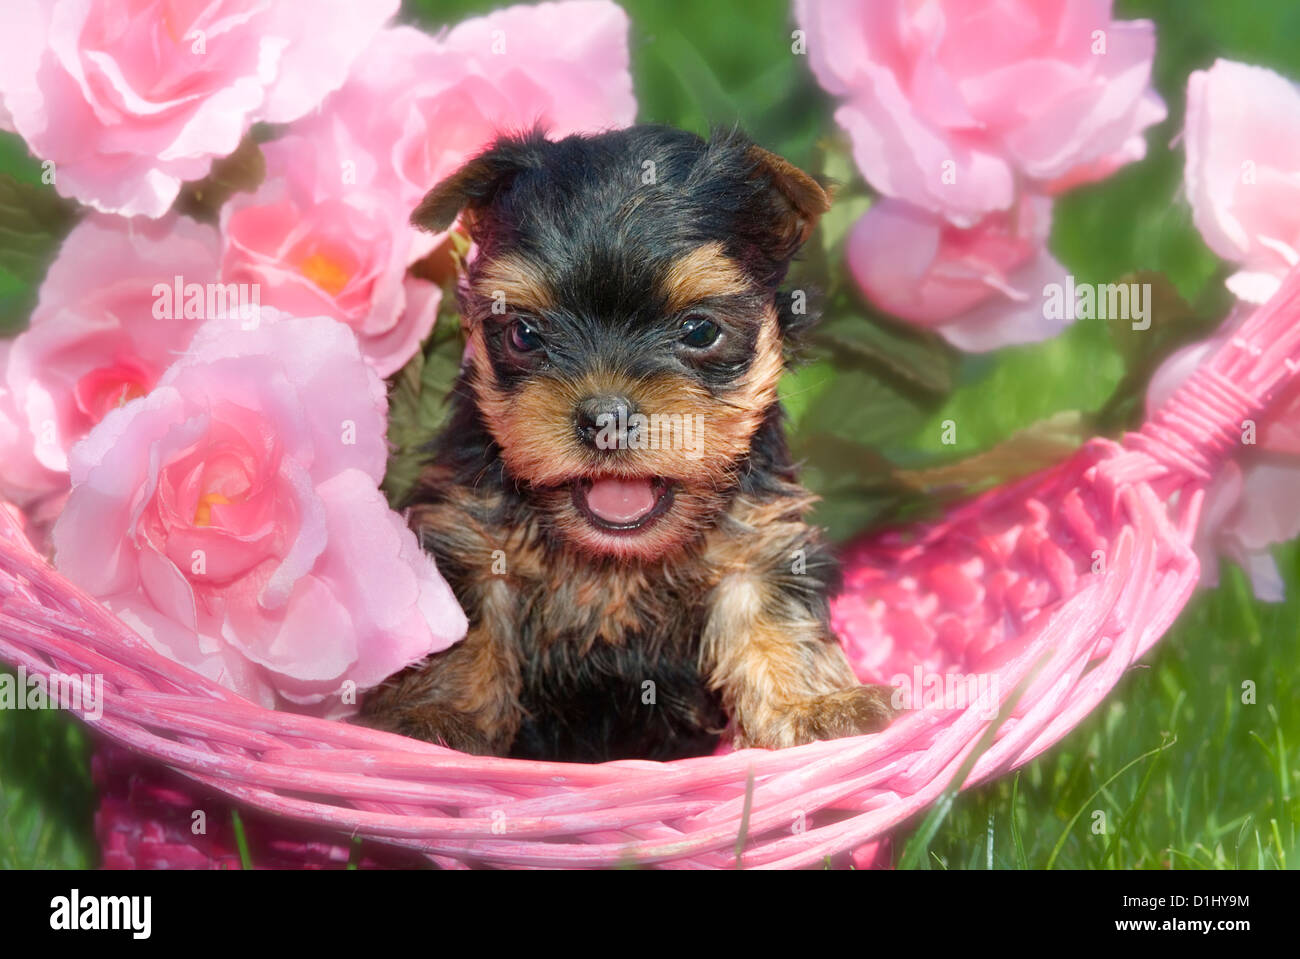 Small Yorkshire Terrier - Stock Image